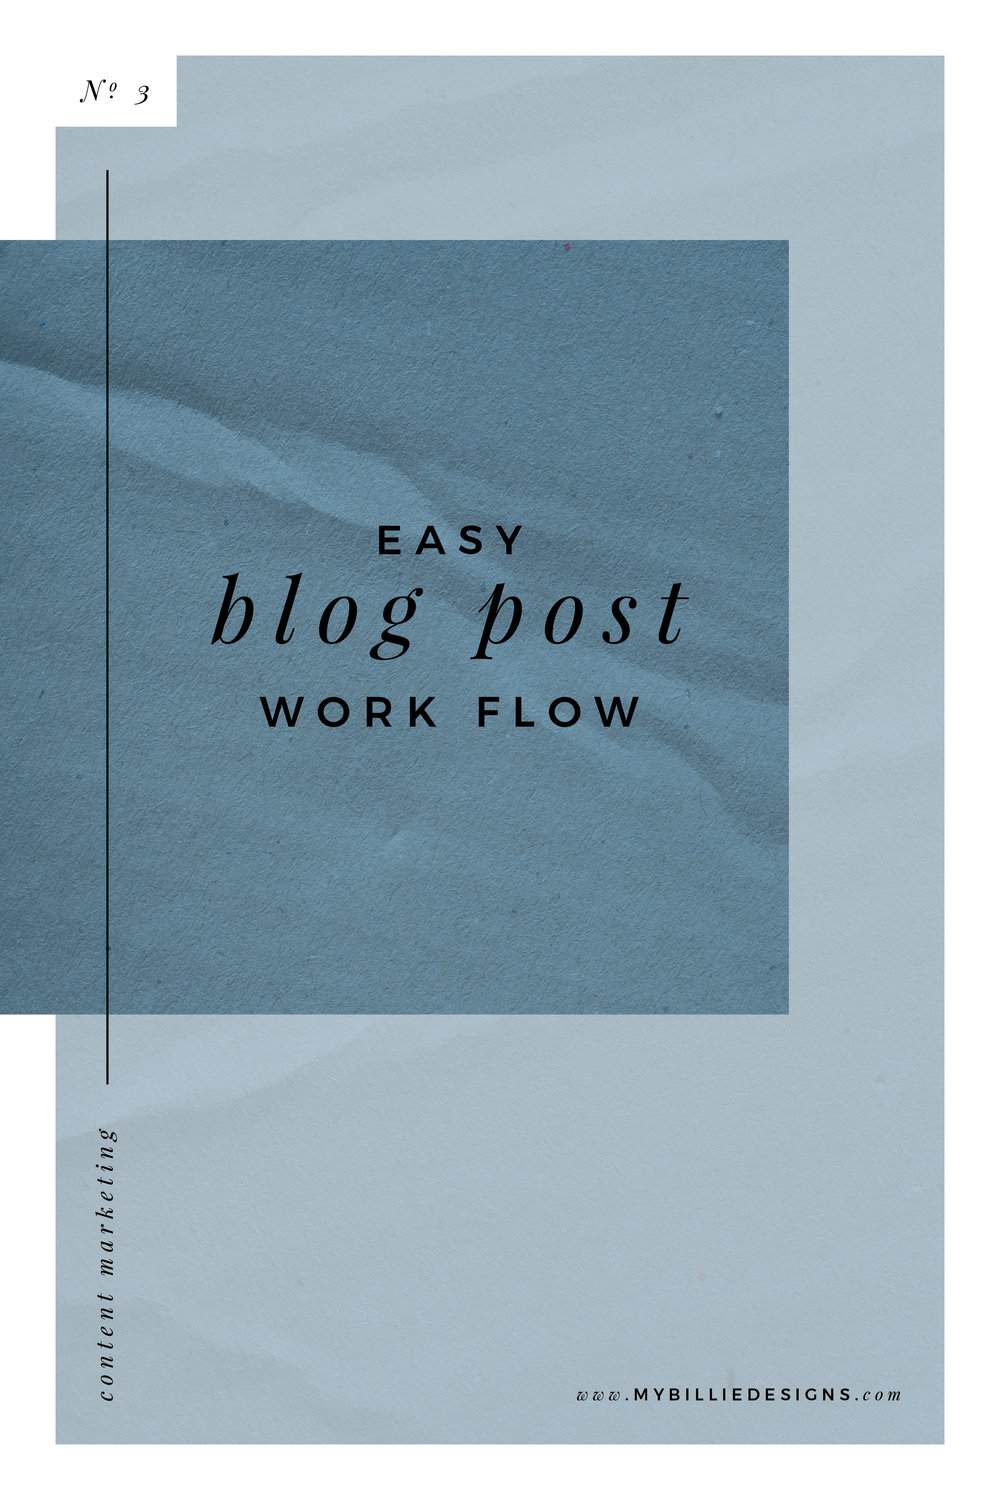 blog post workflow before and after hitting publish